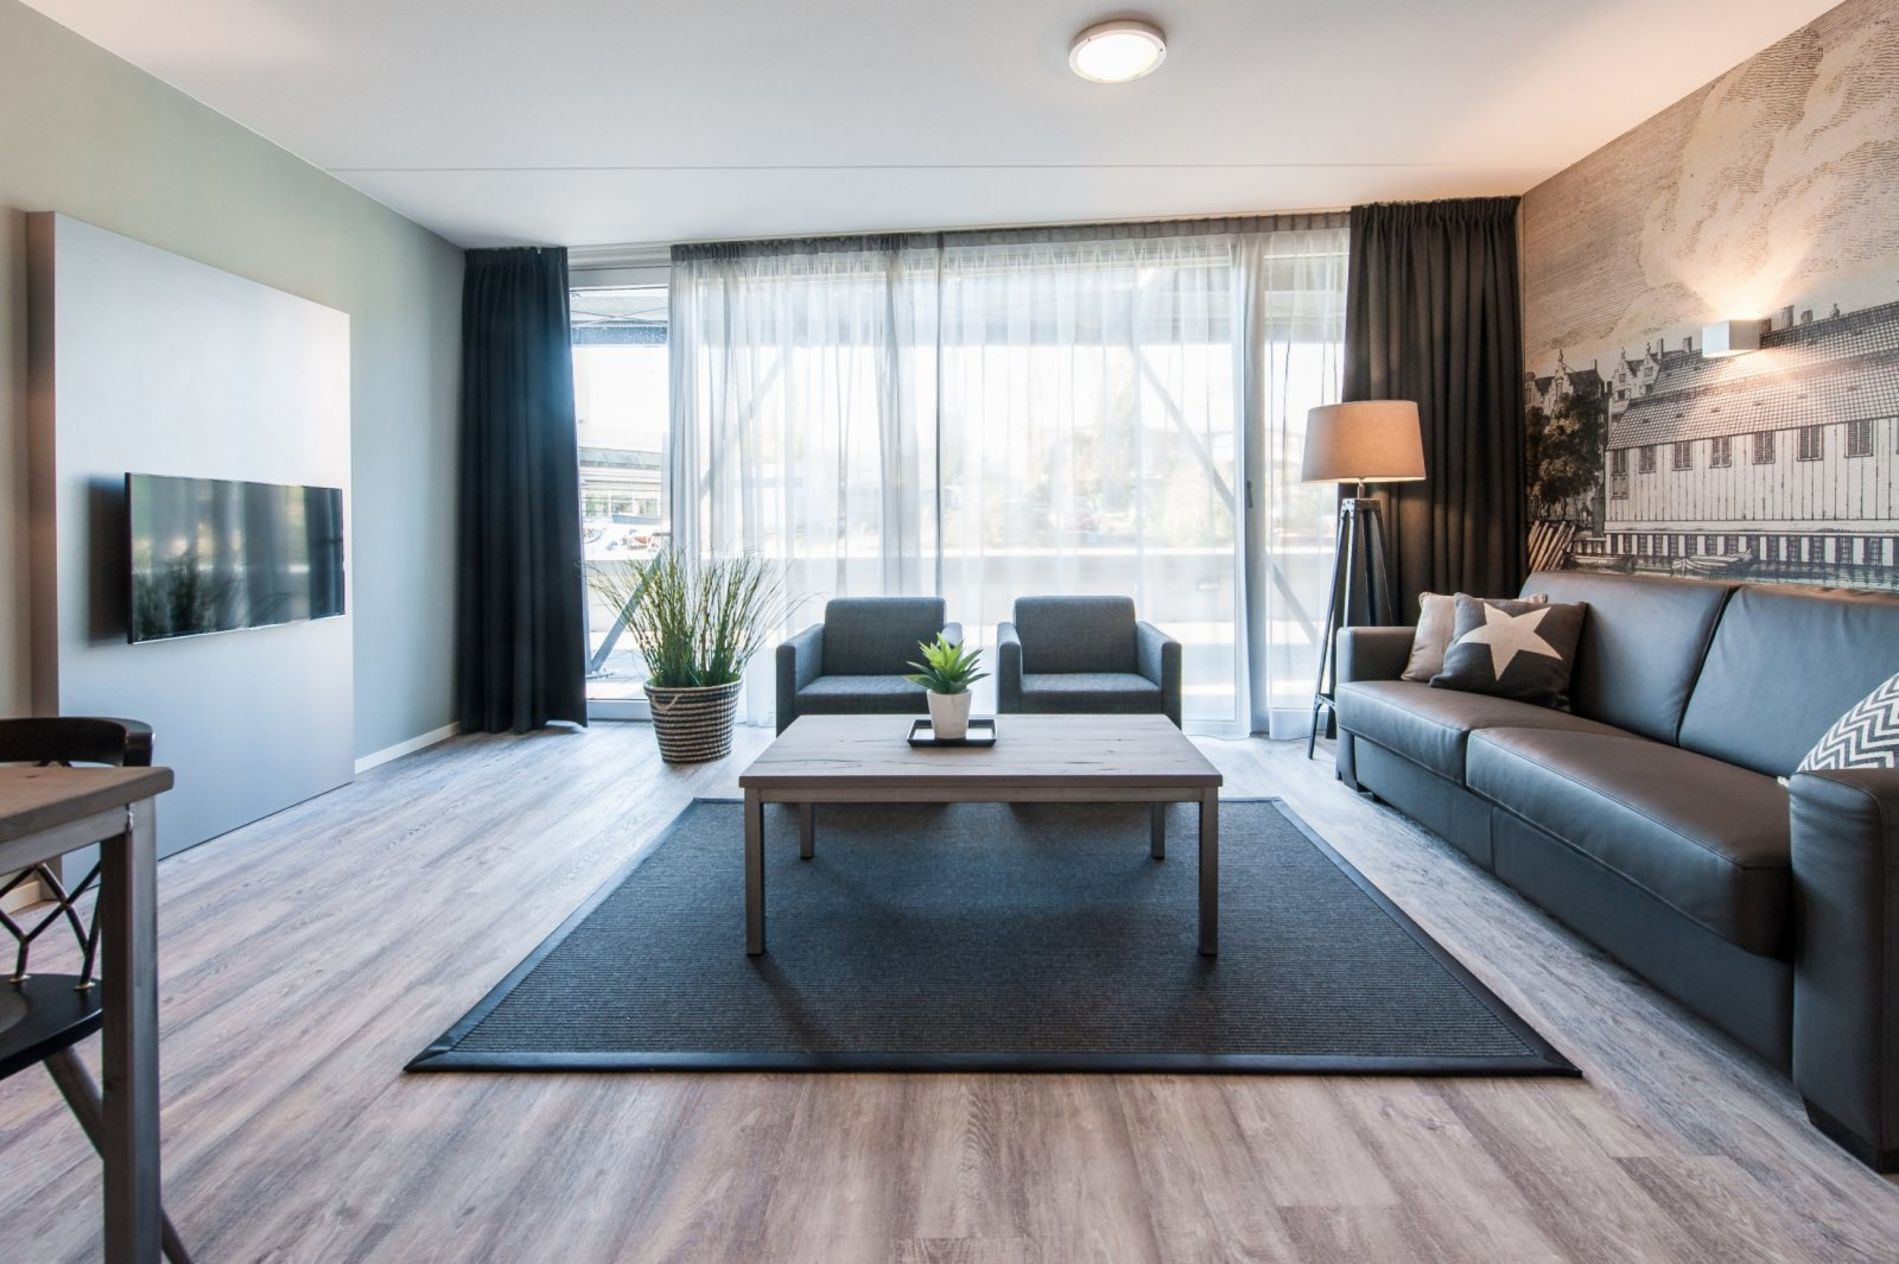 Family-friendly Serviced apartment in Amsterdam perfect for long stays of over 6 months